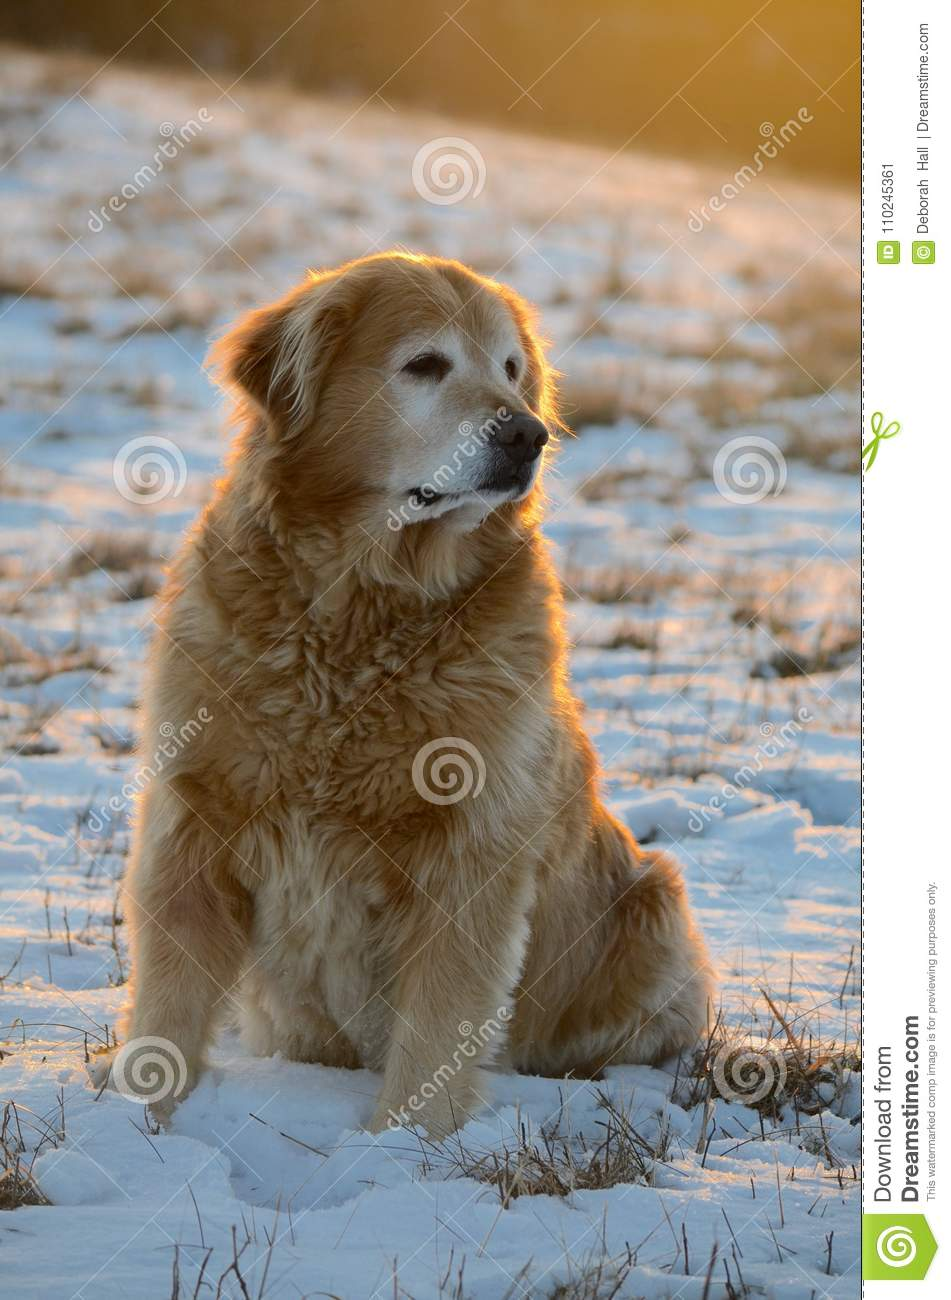 Model Dog From NH In The Snow Stock Image - Image of puppy